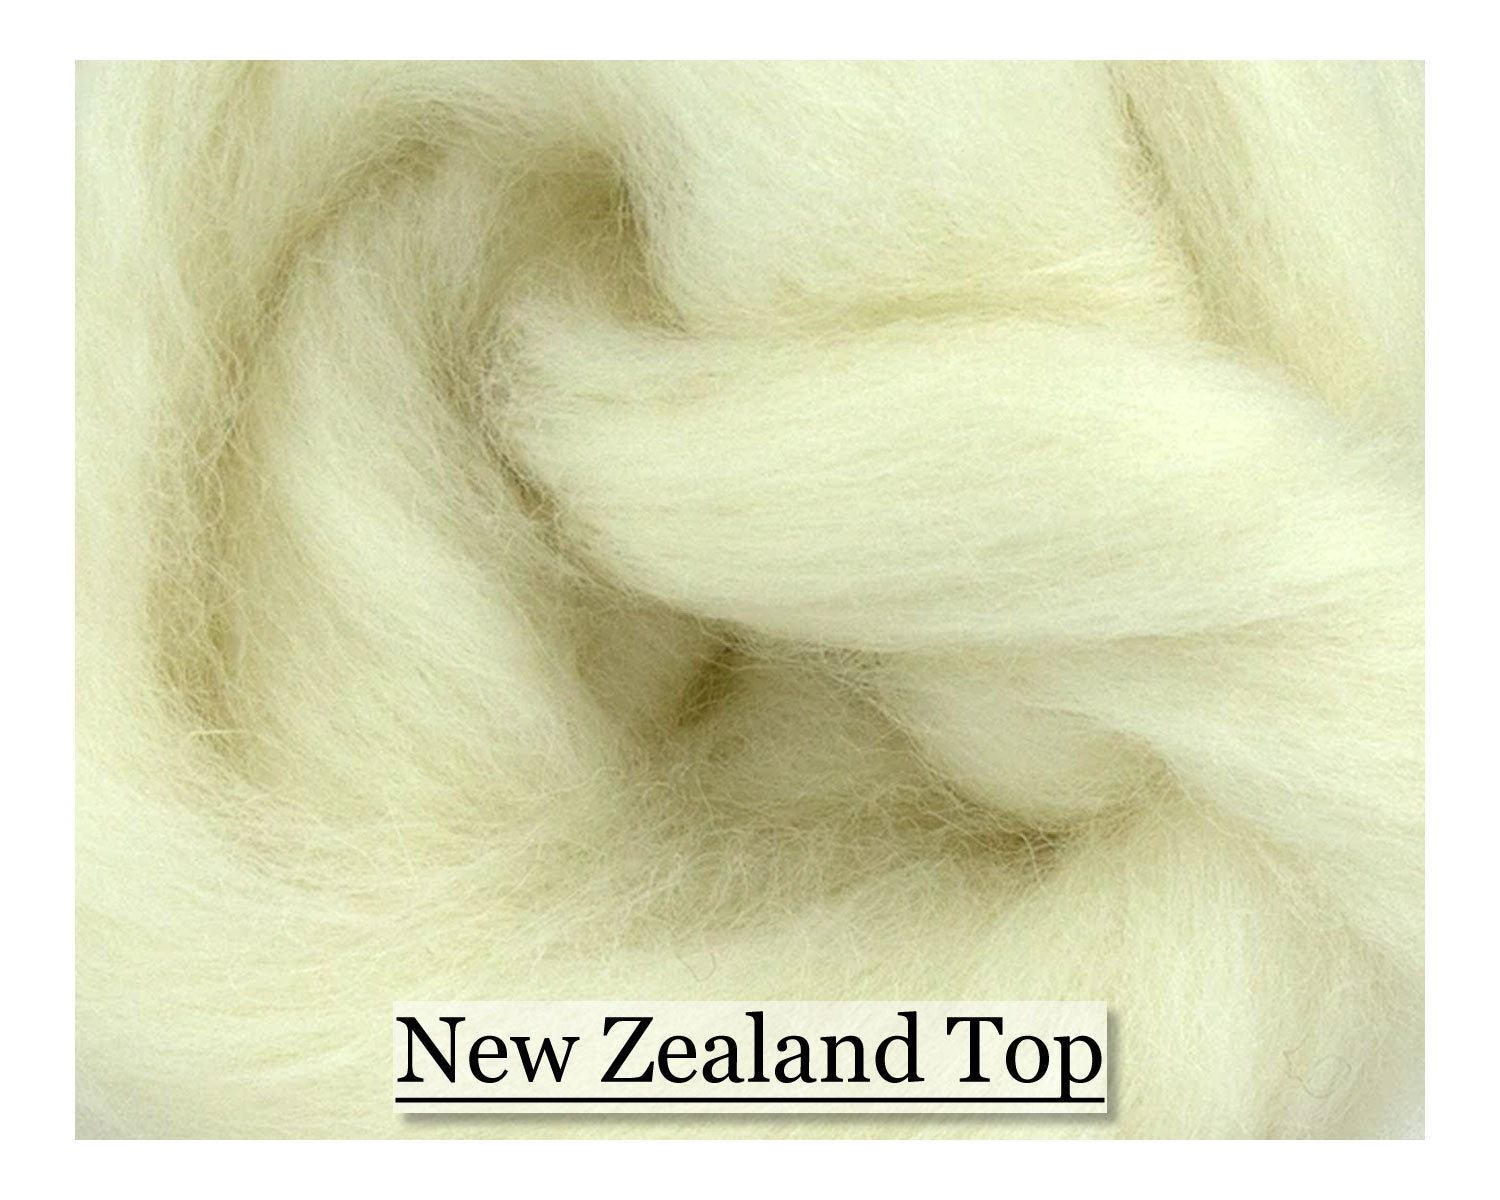 New Zealand Top - 1, 2 or 4 oz size